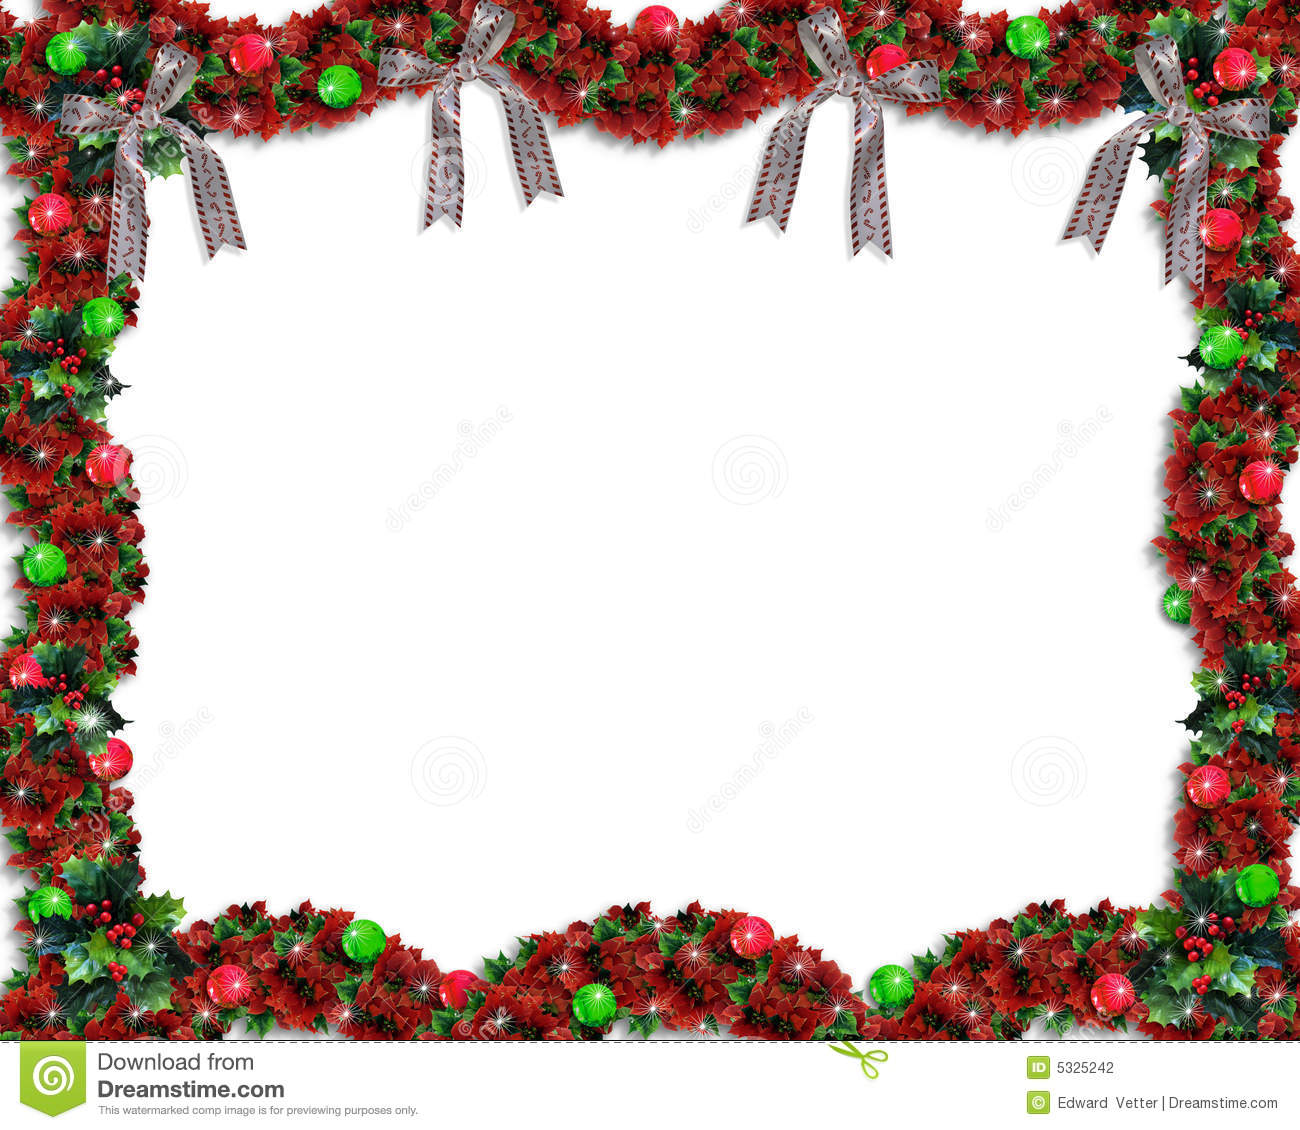 ... leaves and flowers for background, border or frame with copy space